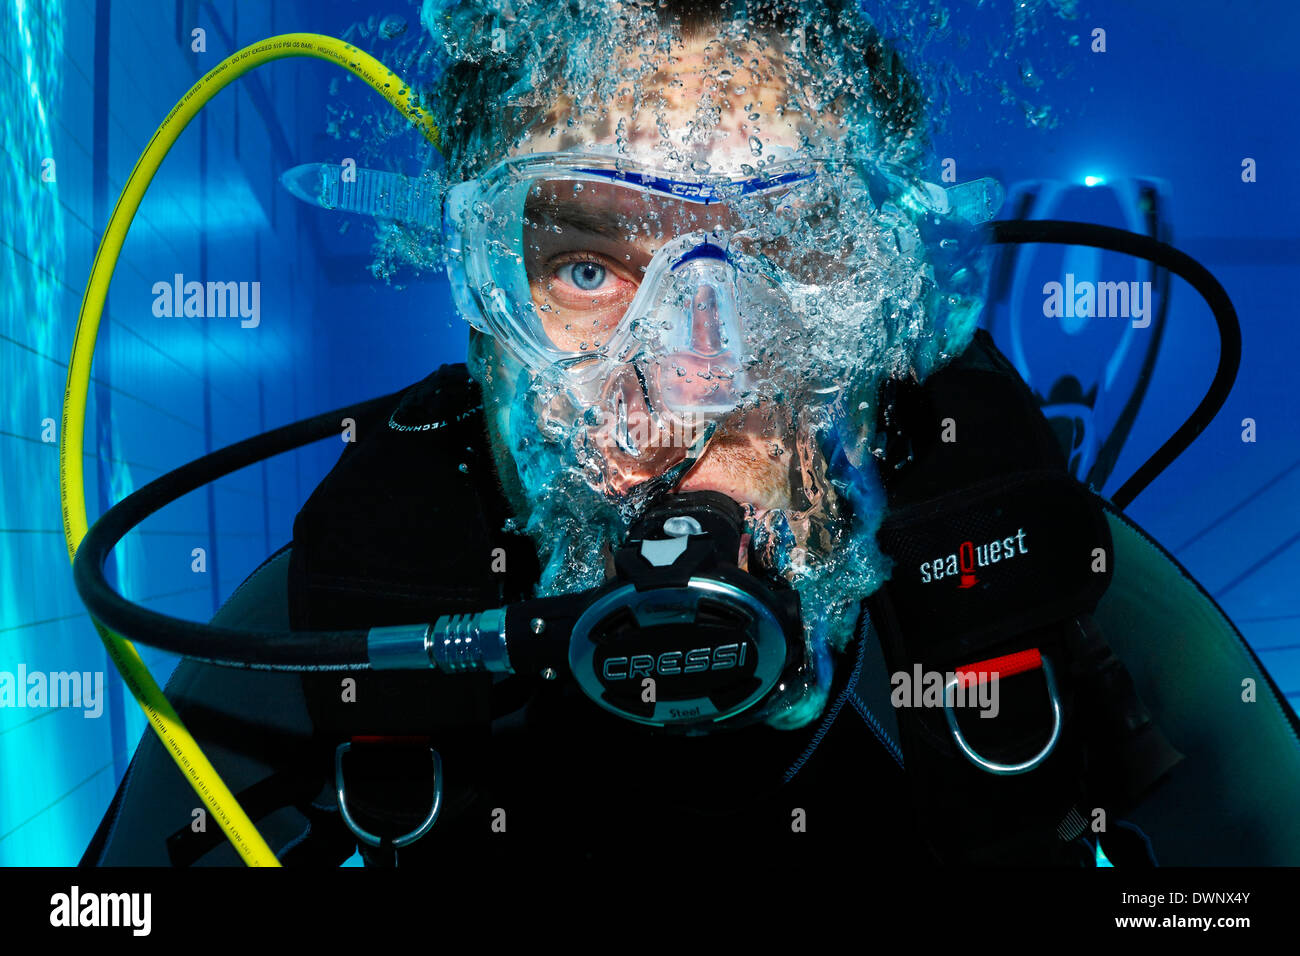 Scuba diver with air bubbles, portrait, in a swimming pool, Nuremberg, Bavaria, Germany - Stock Image